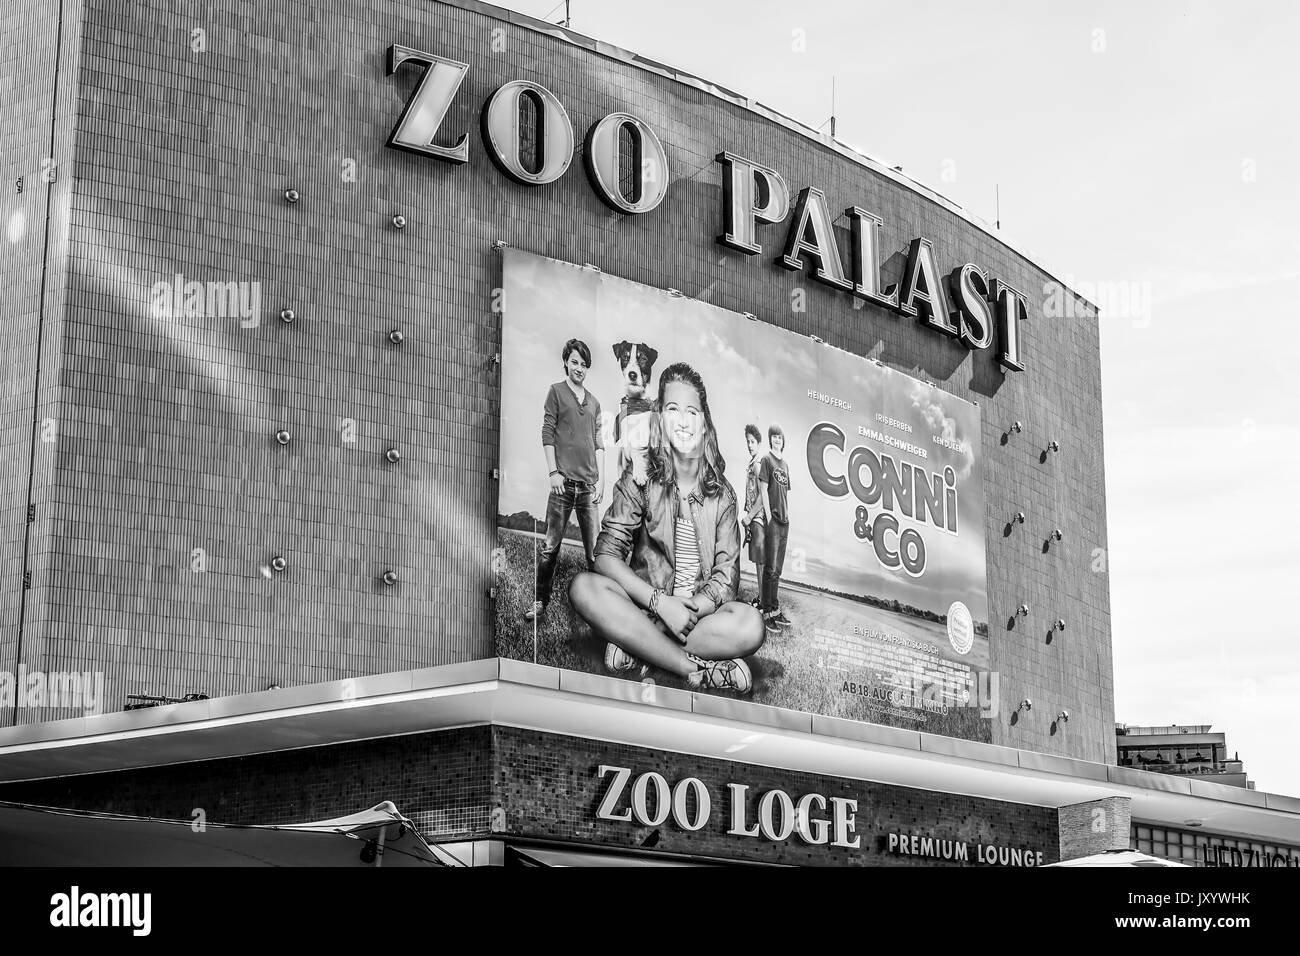 Zoo Palast Roter Teppich Zoo Palast Stockfotos And Zoo Palast Bilder Alamy